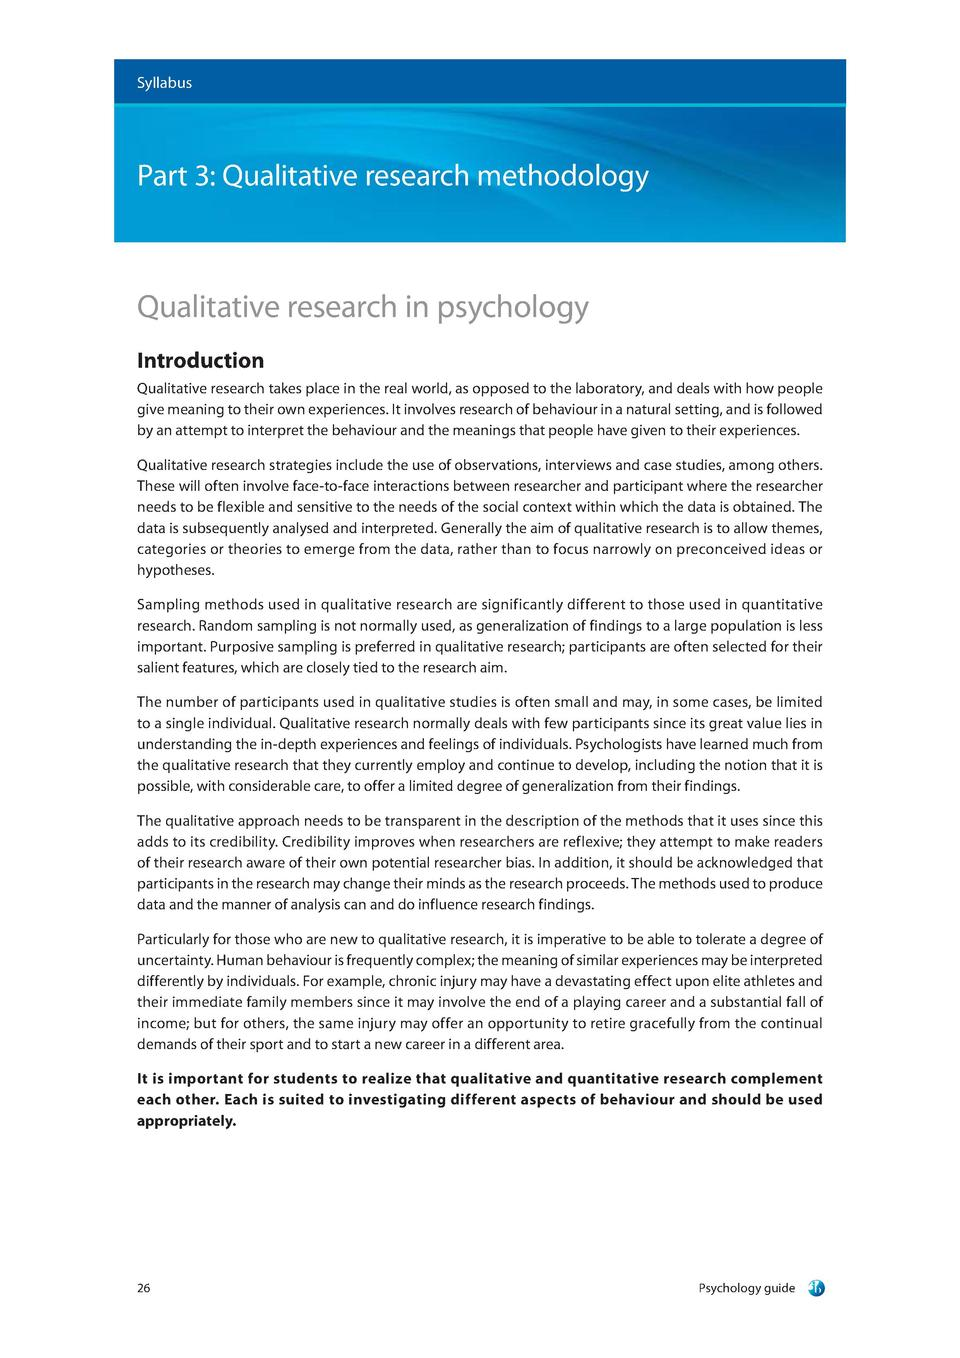 psychologist career research paper Human minds, behavior - a career as a psychologist my account preview preview a career as a psychologist career research paper: clinical psychology -.